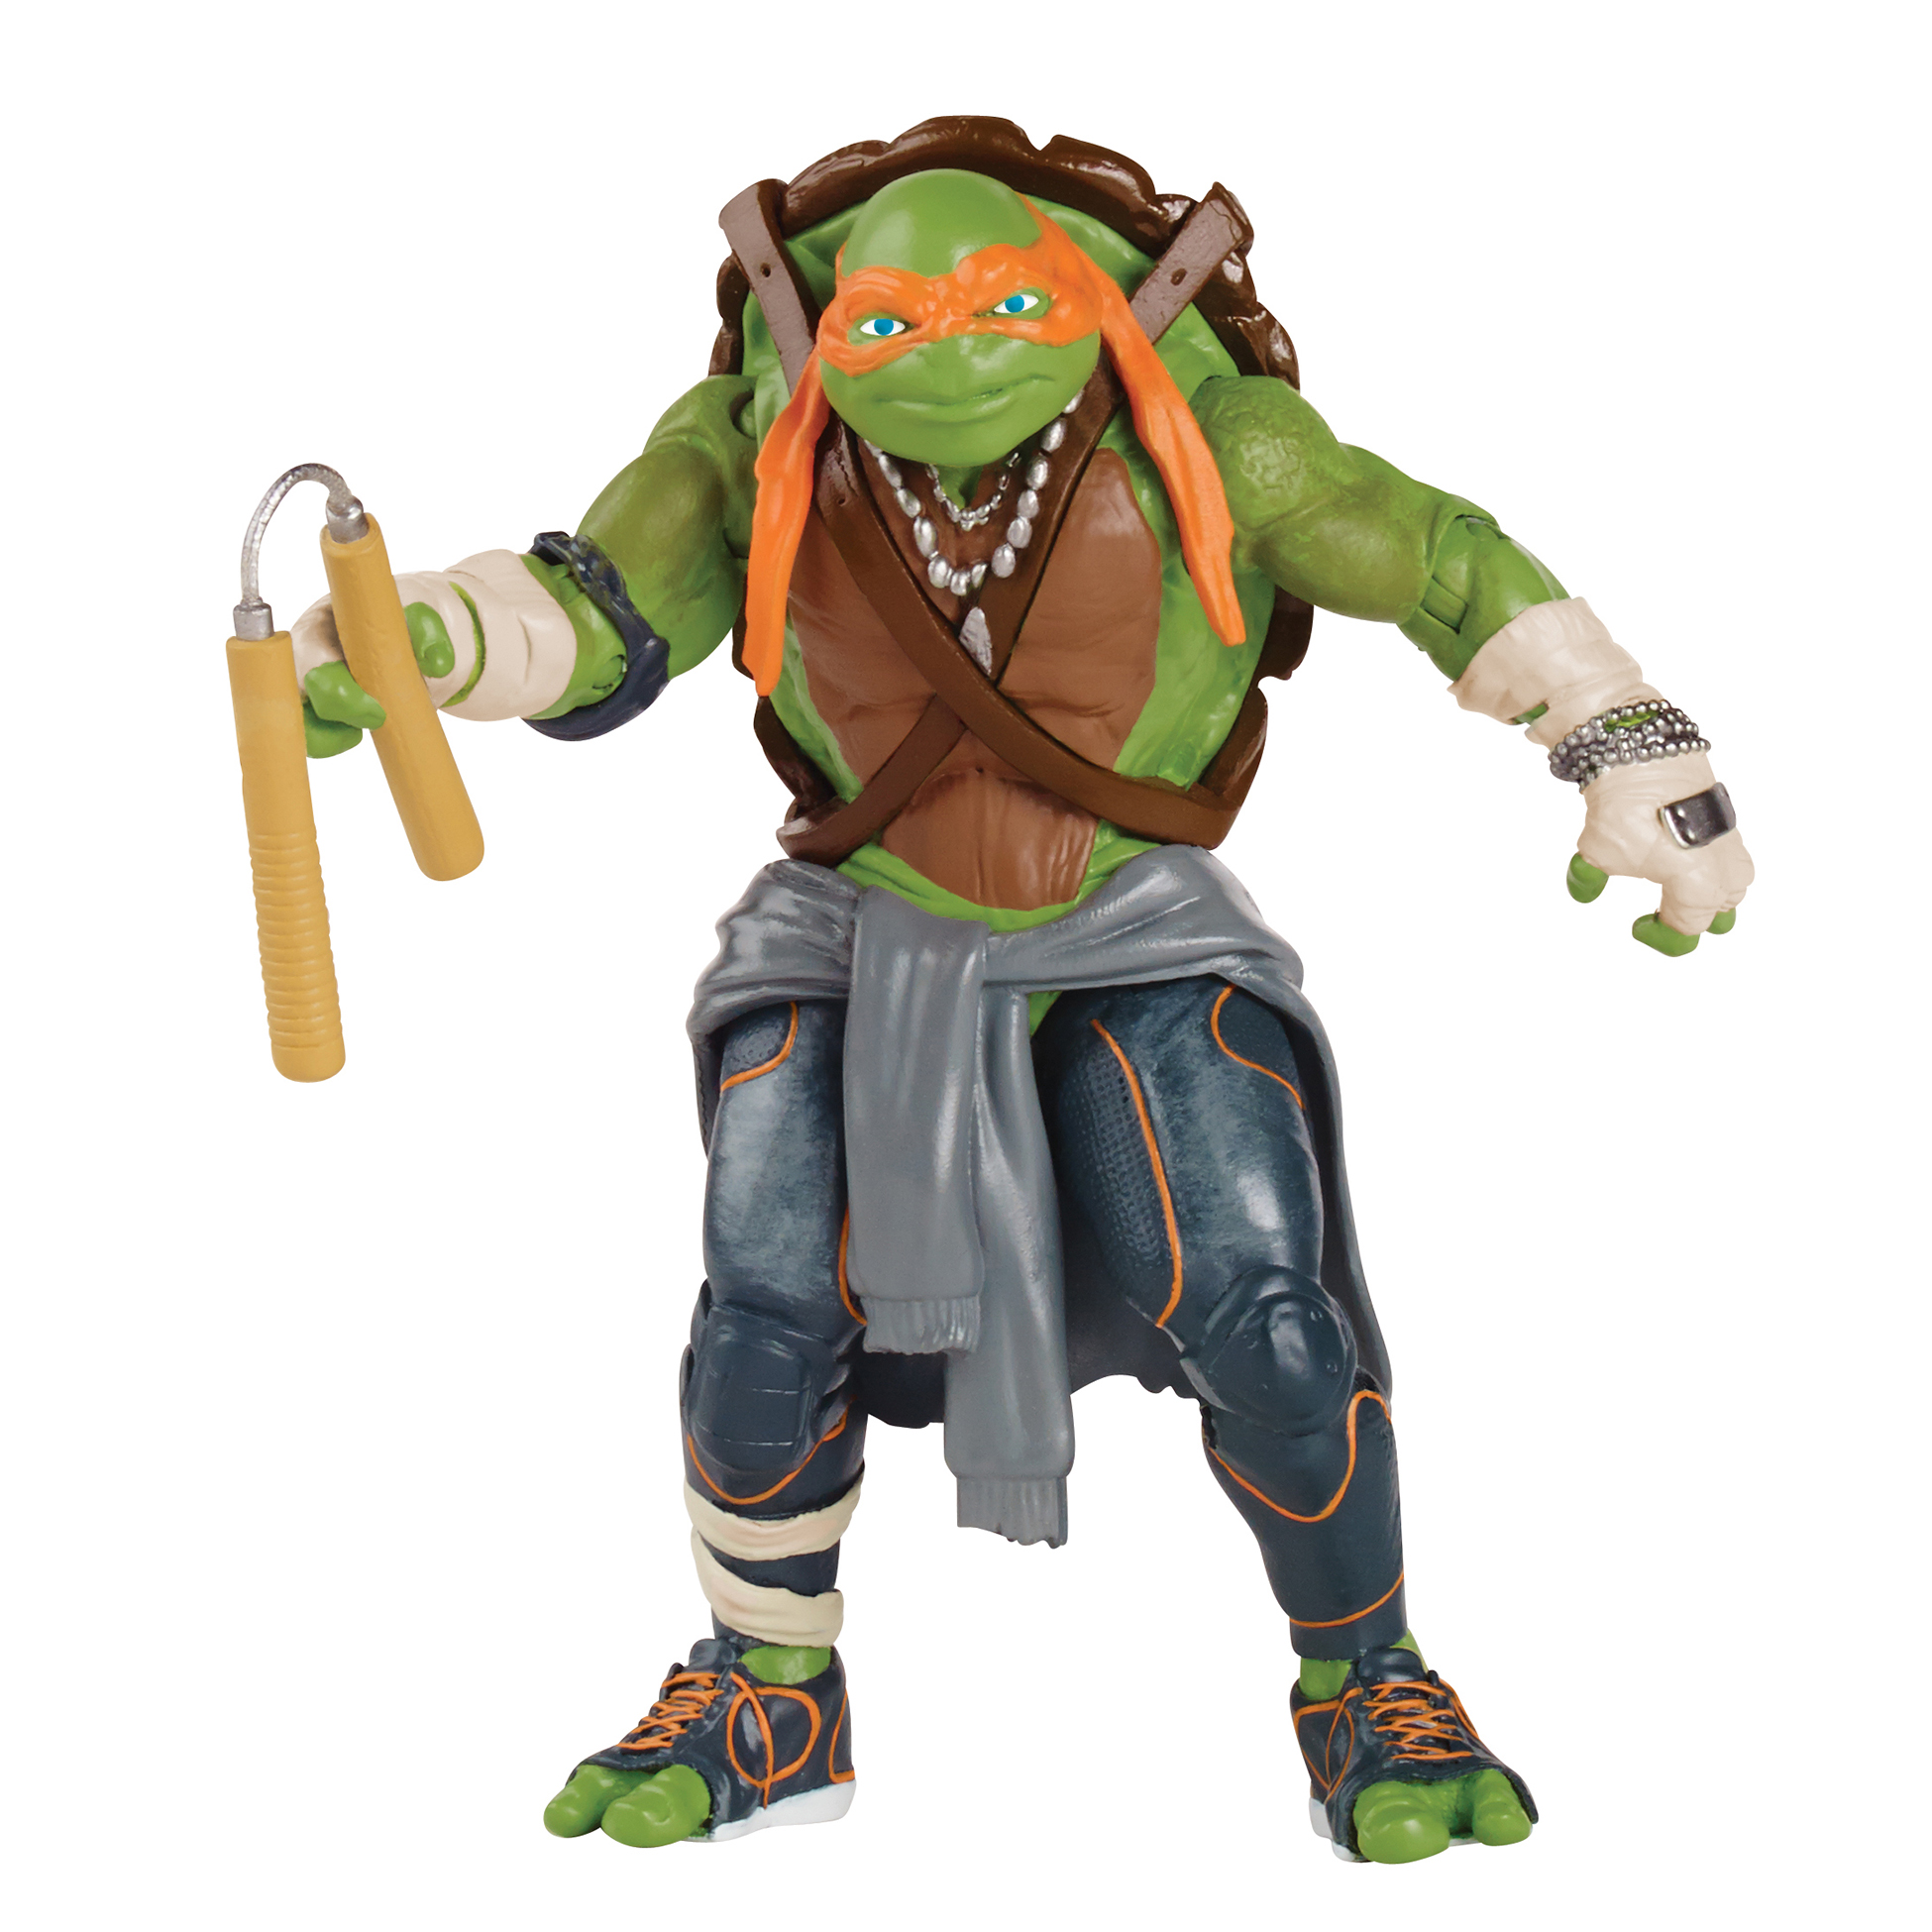 Teenage Mutant Ninja Turtles Emerge From the Shadows Onto the Big Screen and Into Fans' Hands